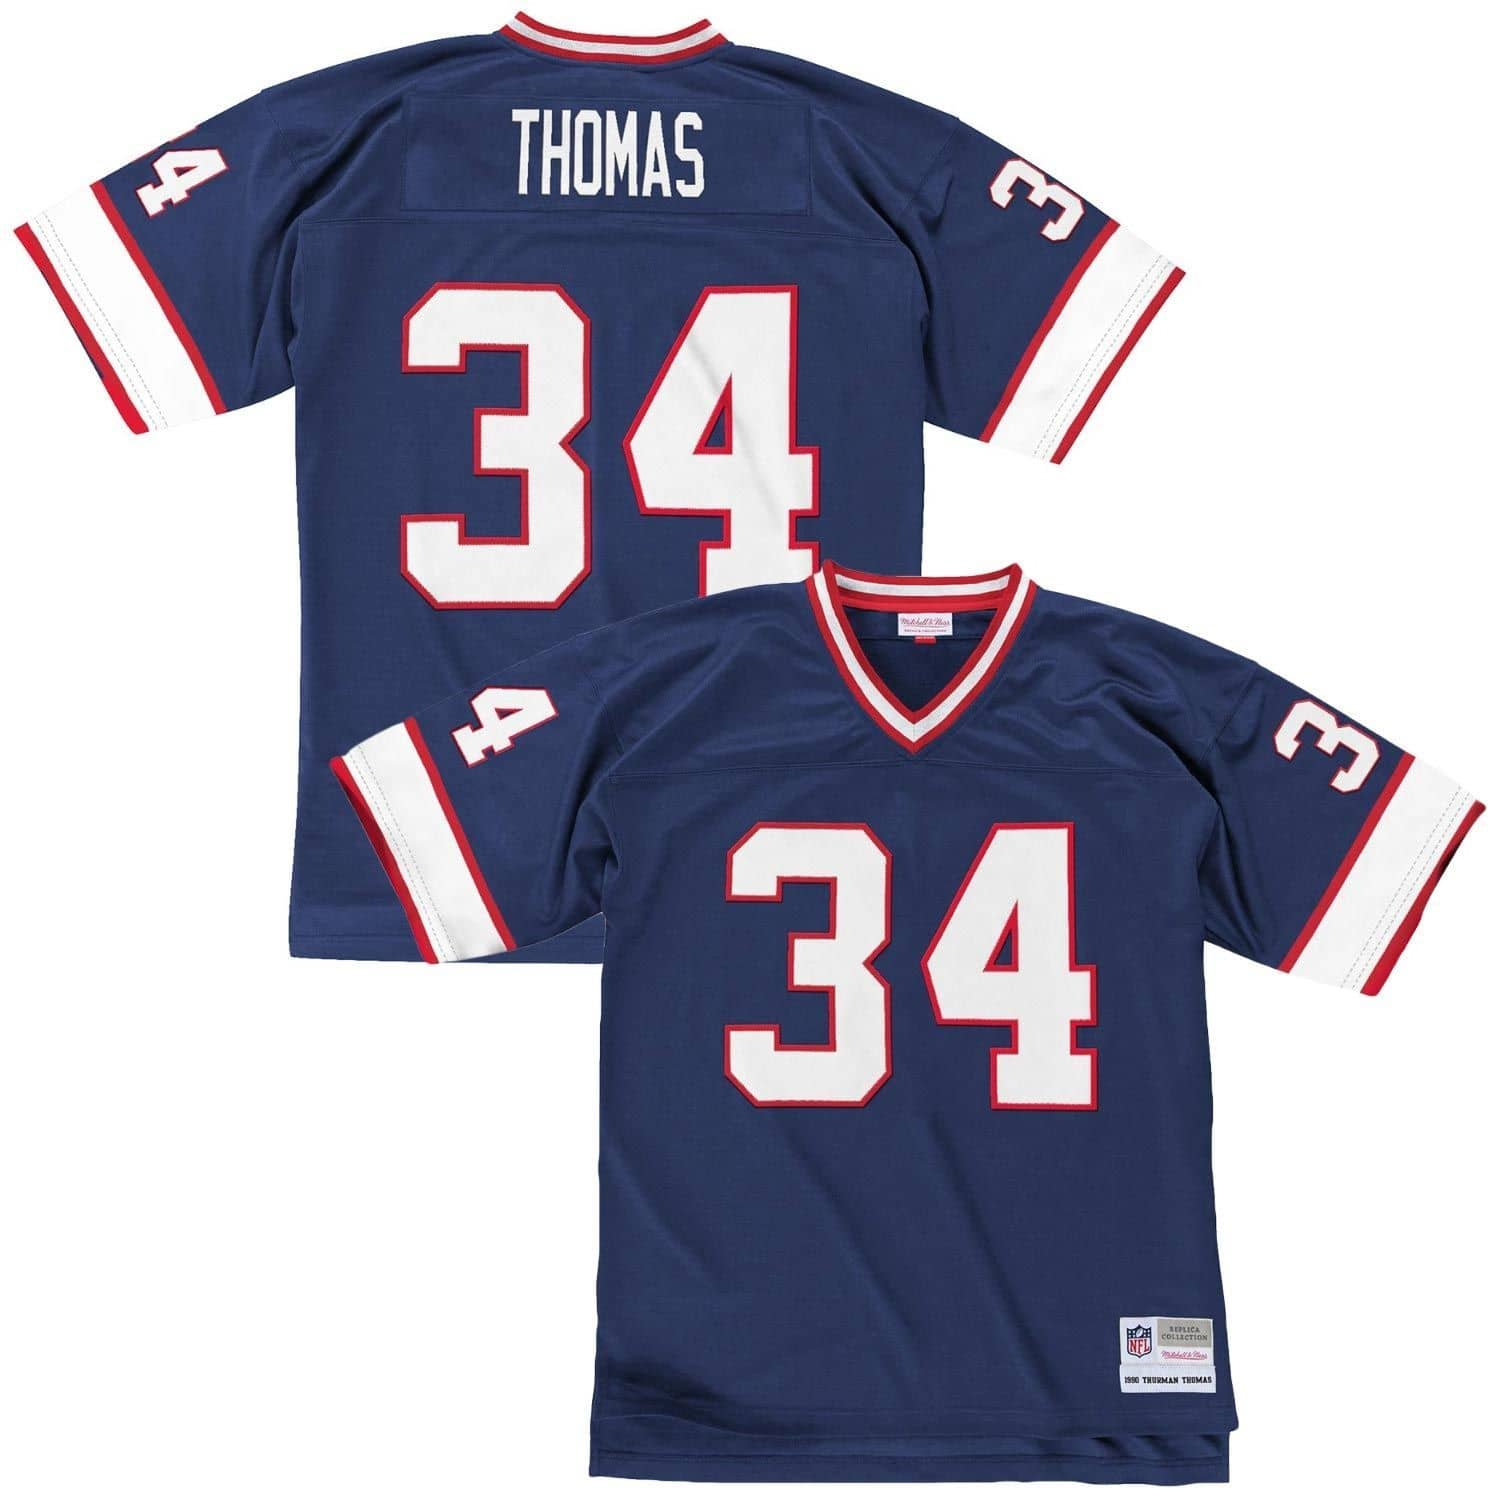 promo code 16d6f a3bda Thurman Thomas #34 Buffalo Bills Legacy Throwback NFL Jersey